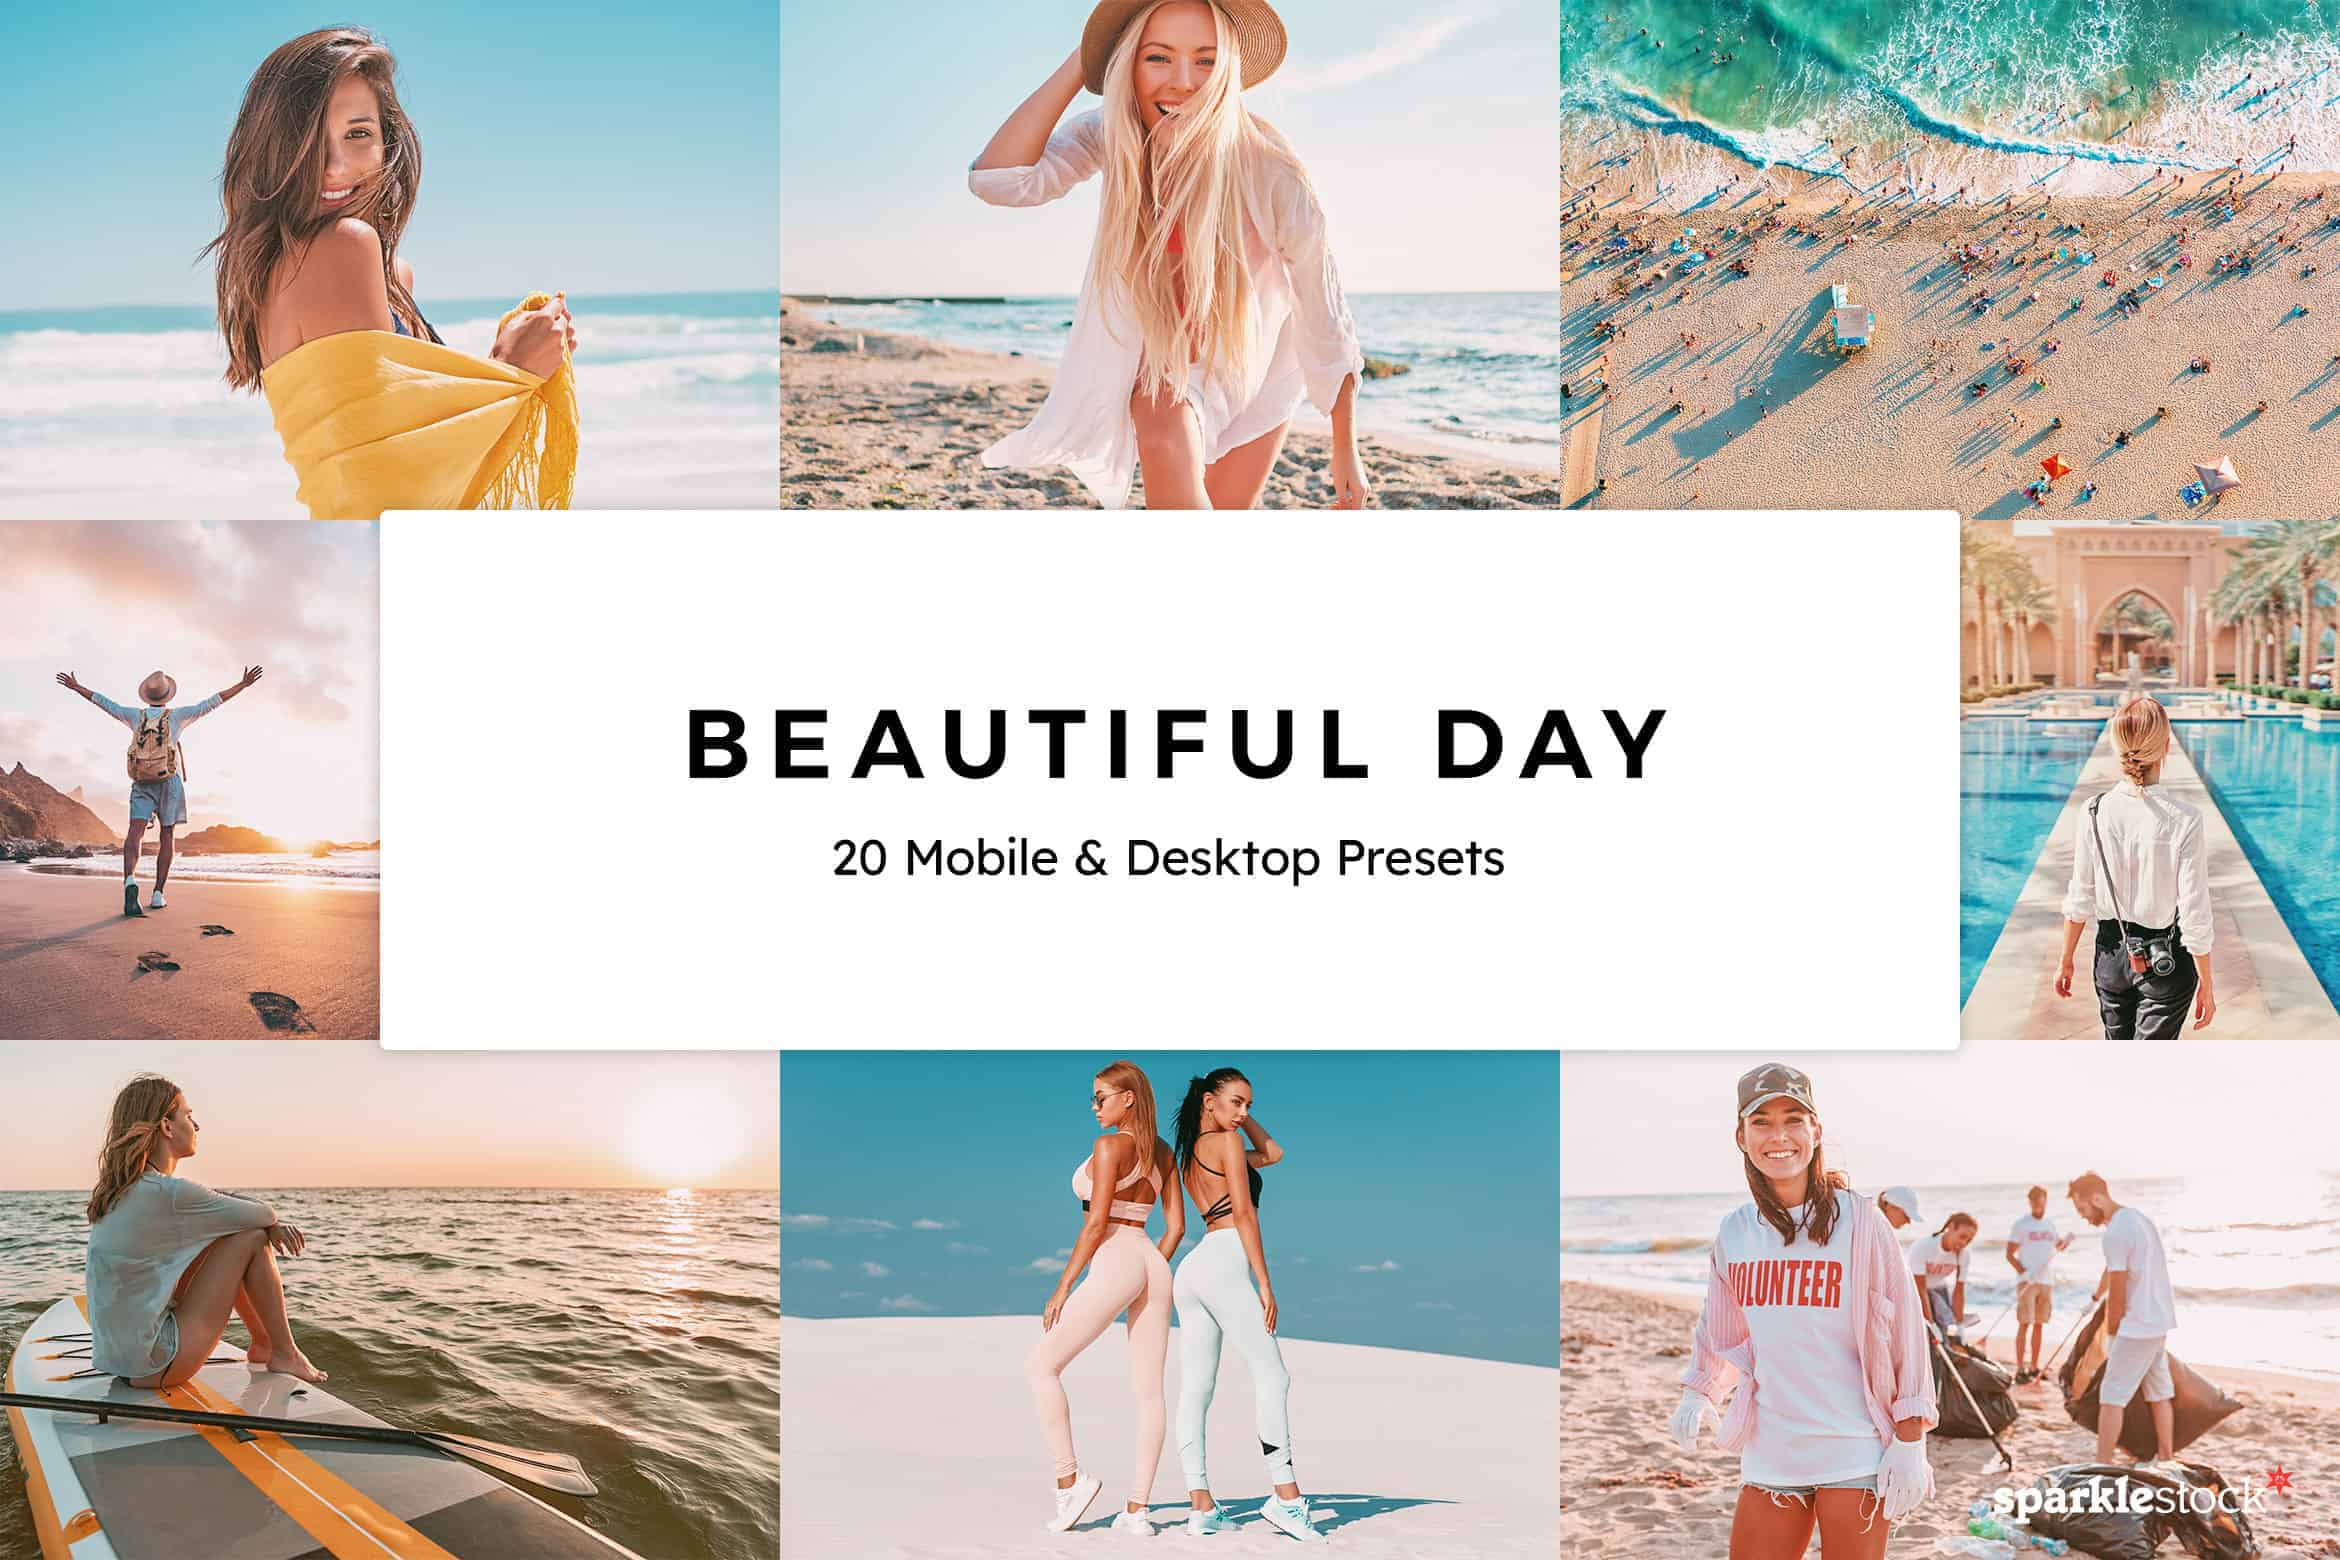 8 Free Beautiful Day Lightroom Presets and LUTs